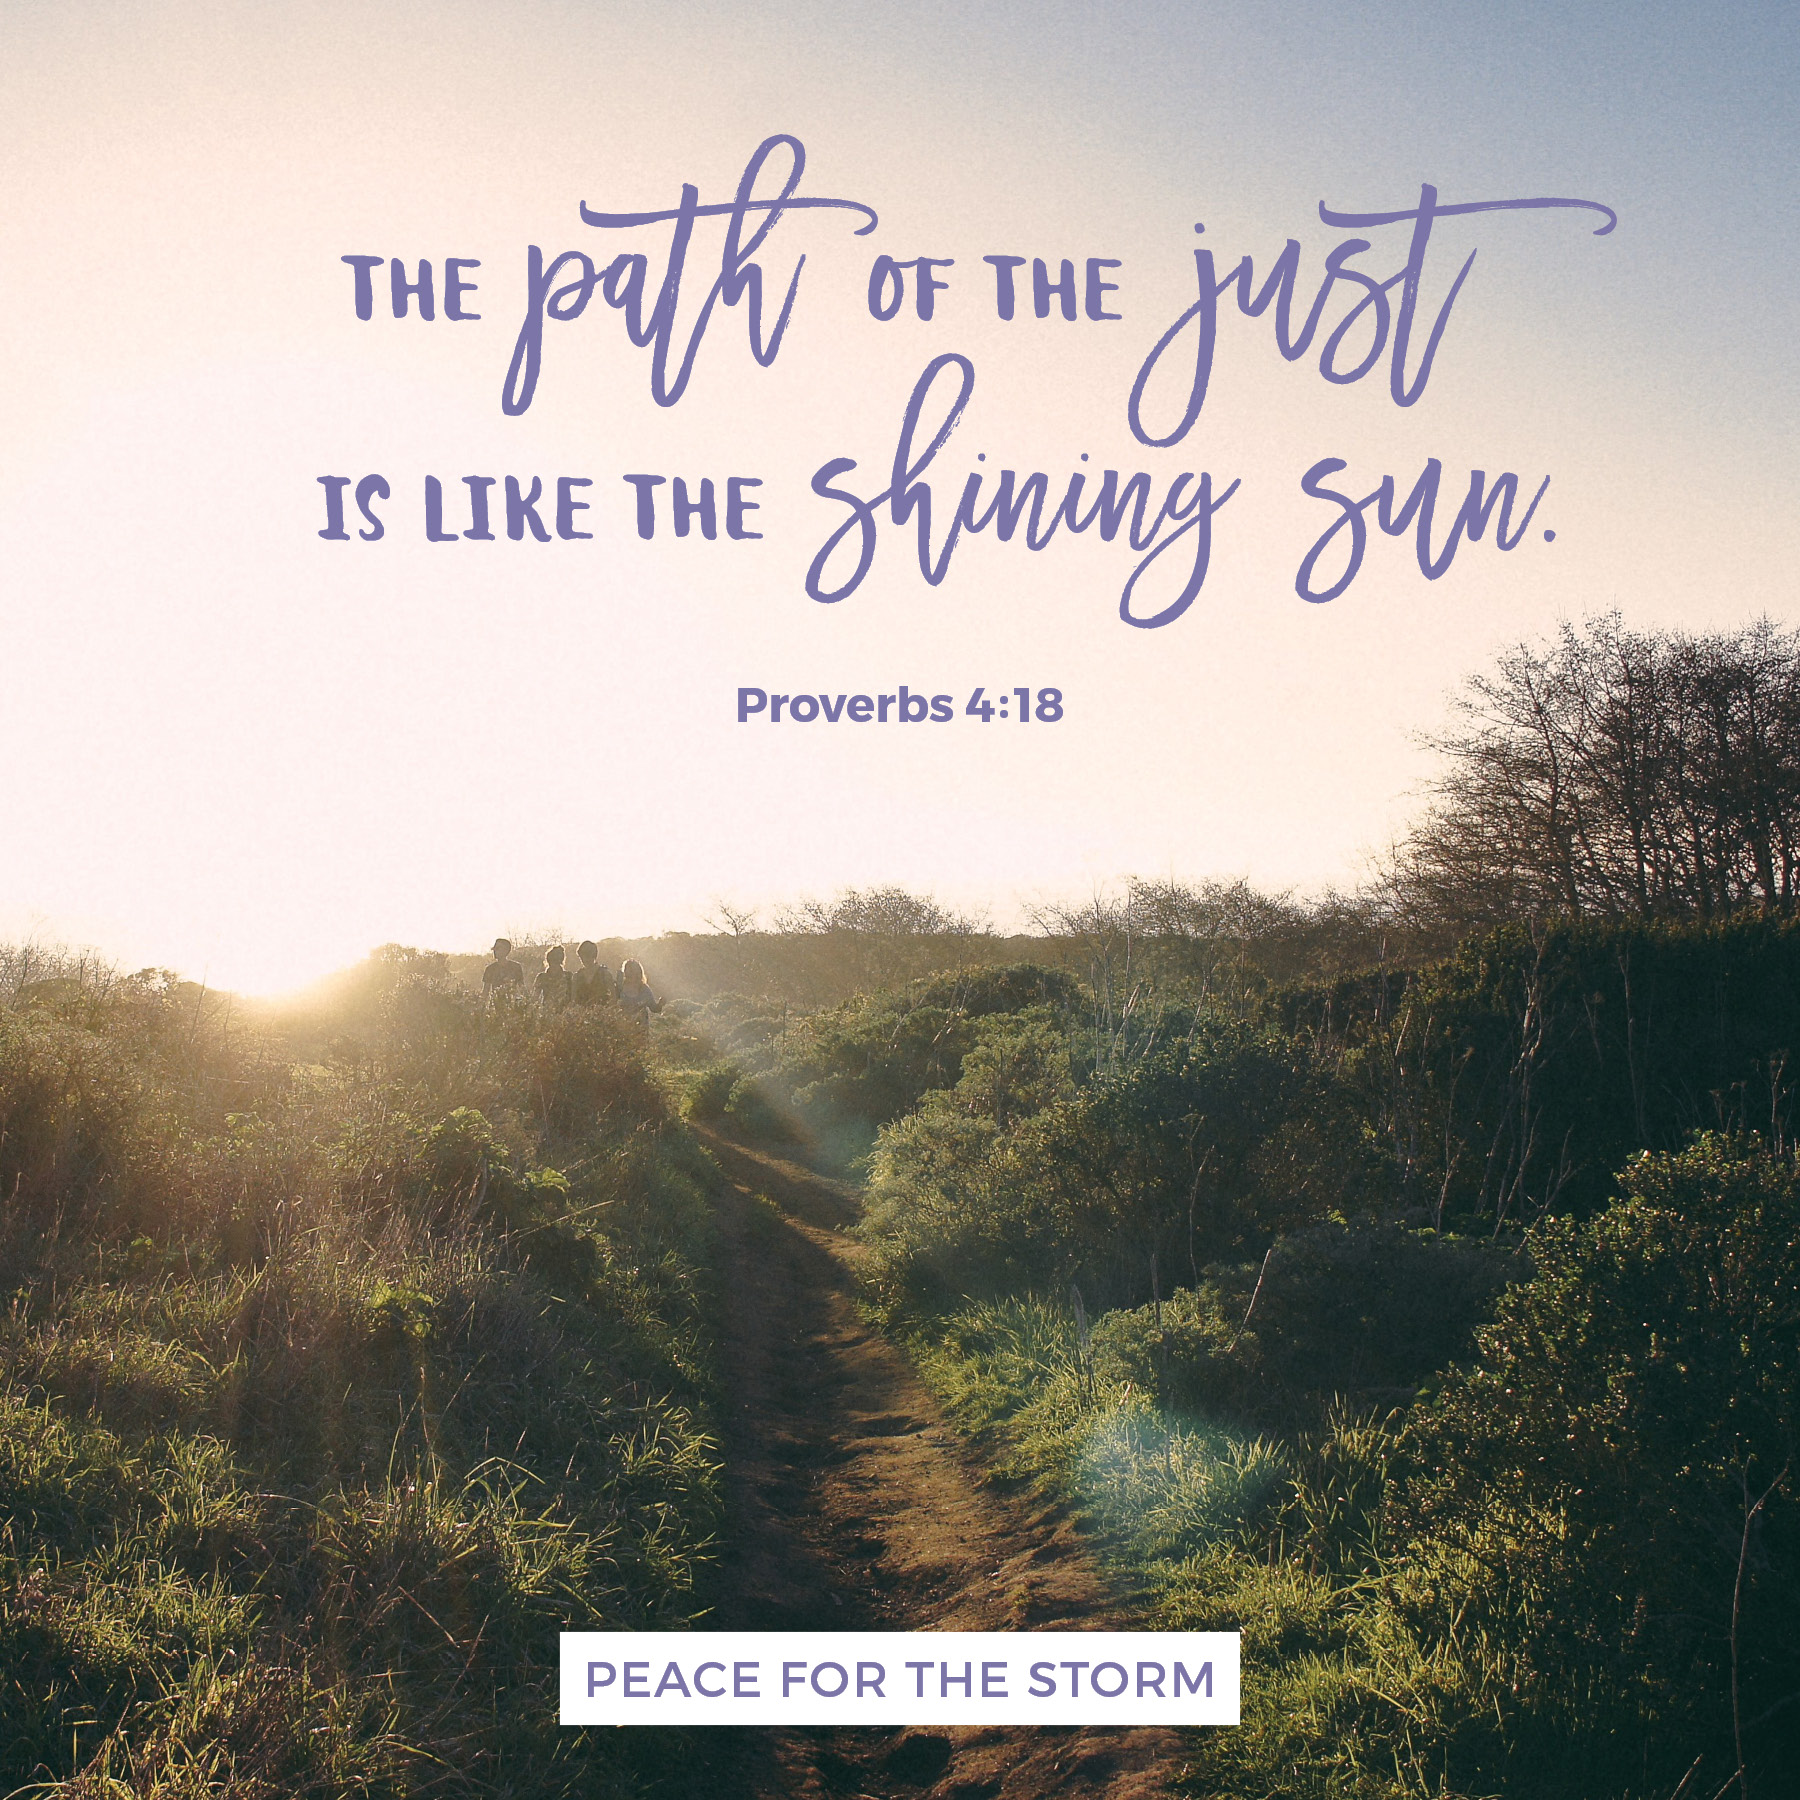 Peace for the Storm Quotes - The Path of the Just